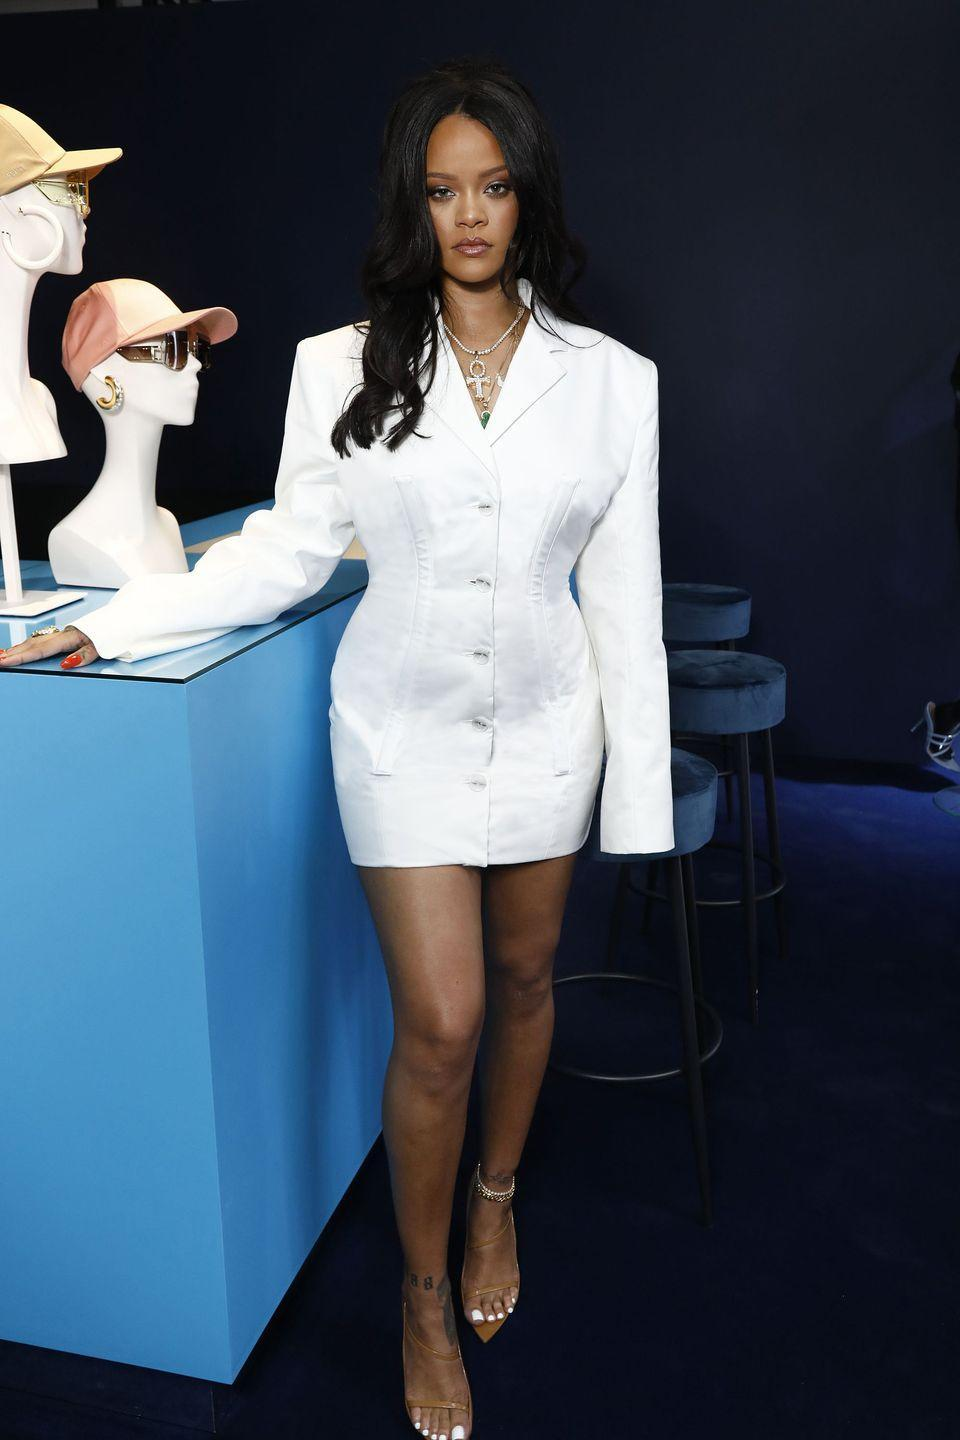 <p>In a white Fenty blazer dress, layered jewelry, ankle bracelets, and nude sandals for the launch of her Fenty fashion line in Paris, France. </p>